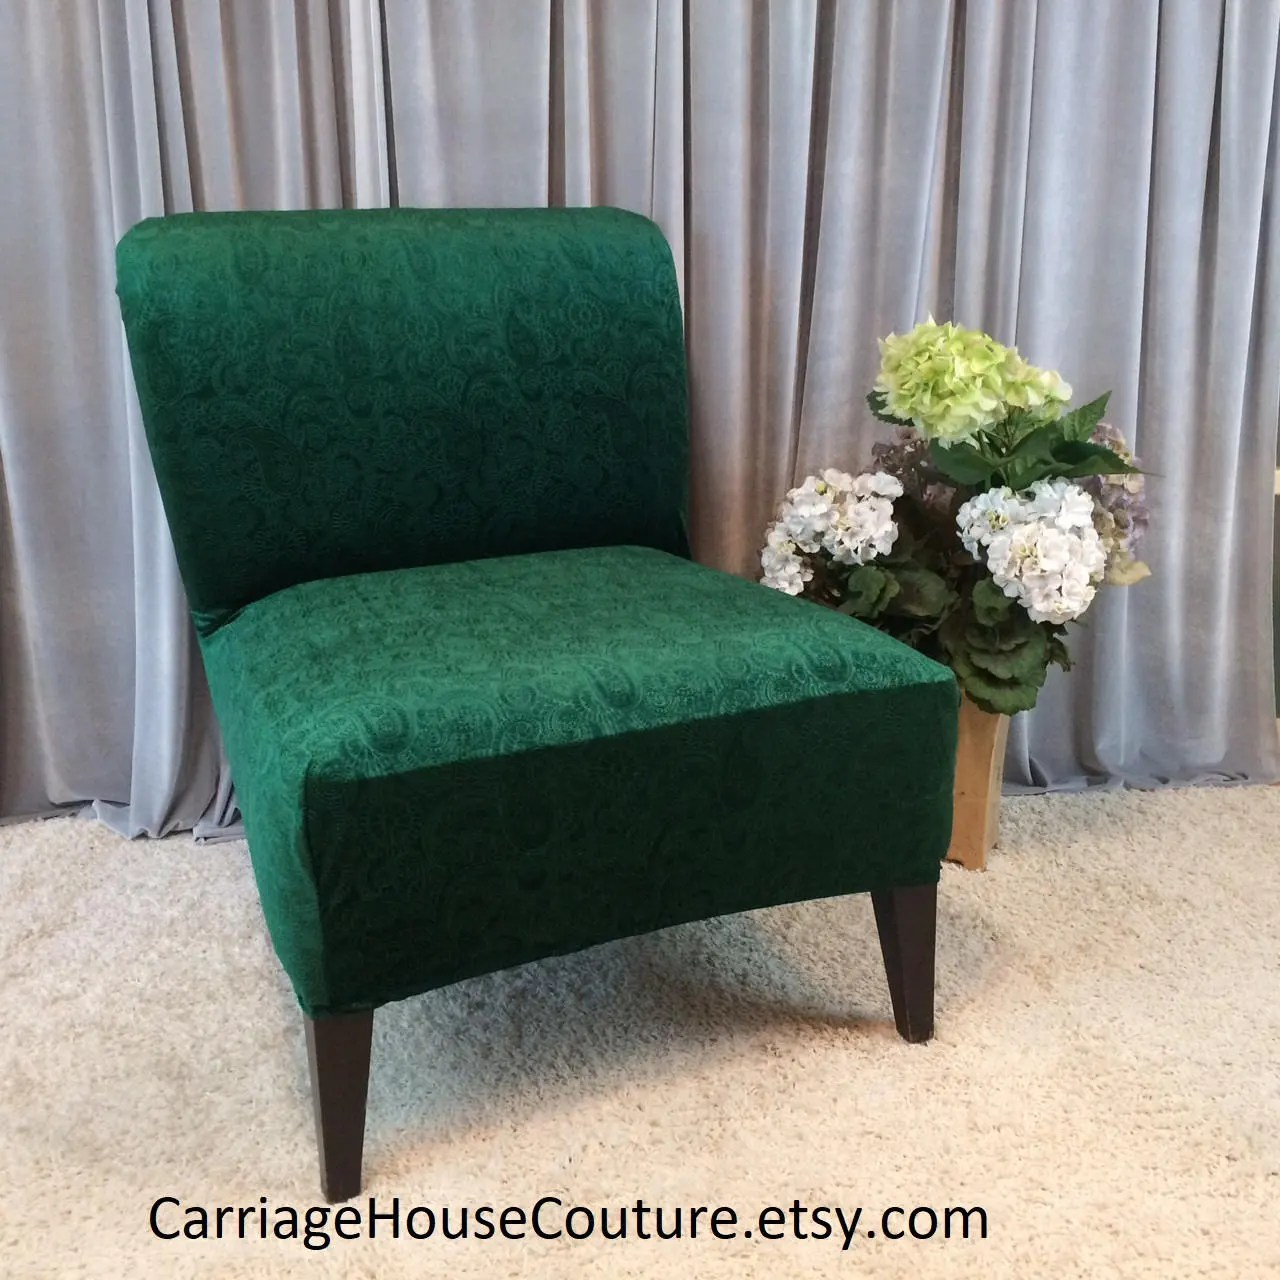 Parsons Chair Covers Emerald Green Embossed Velvet Slipcover Chair Cover For Armless Chair Slipper Chair Accent Chair Parsons Chair Rust Coral Black